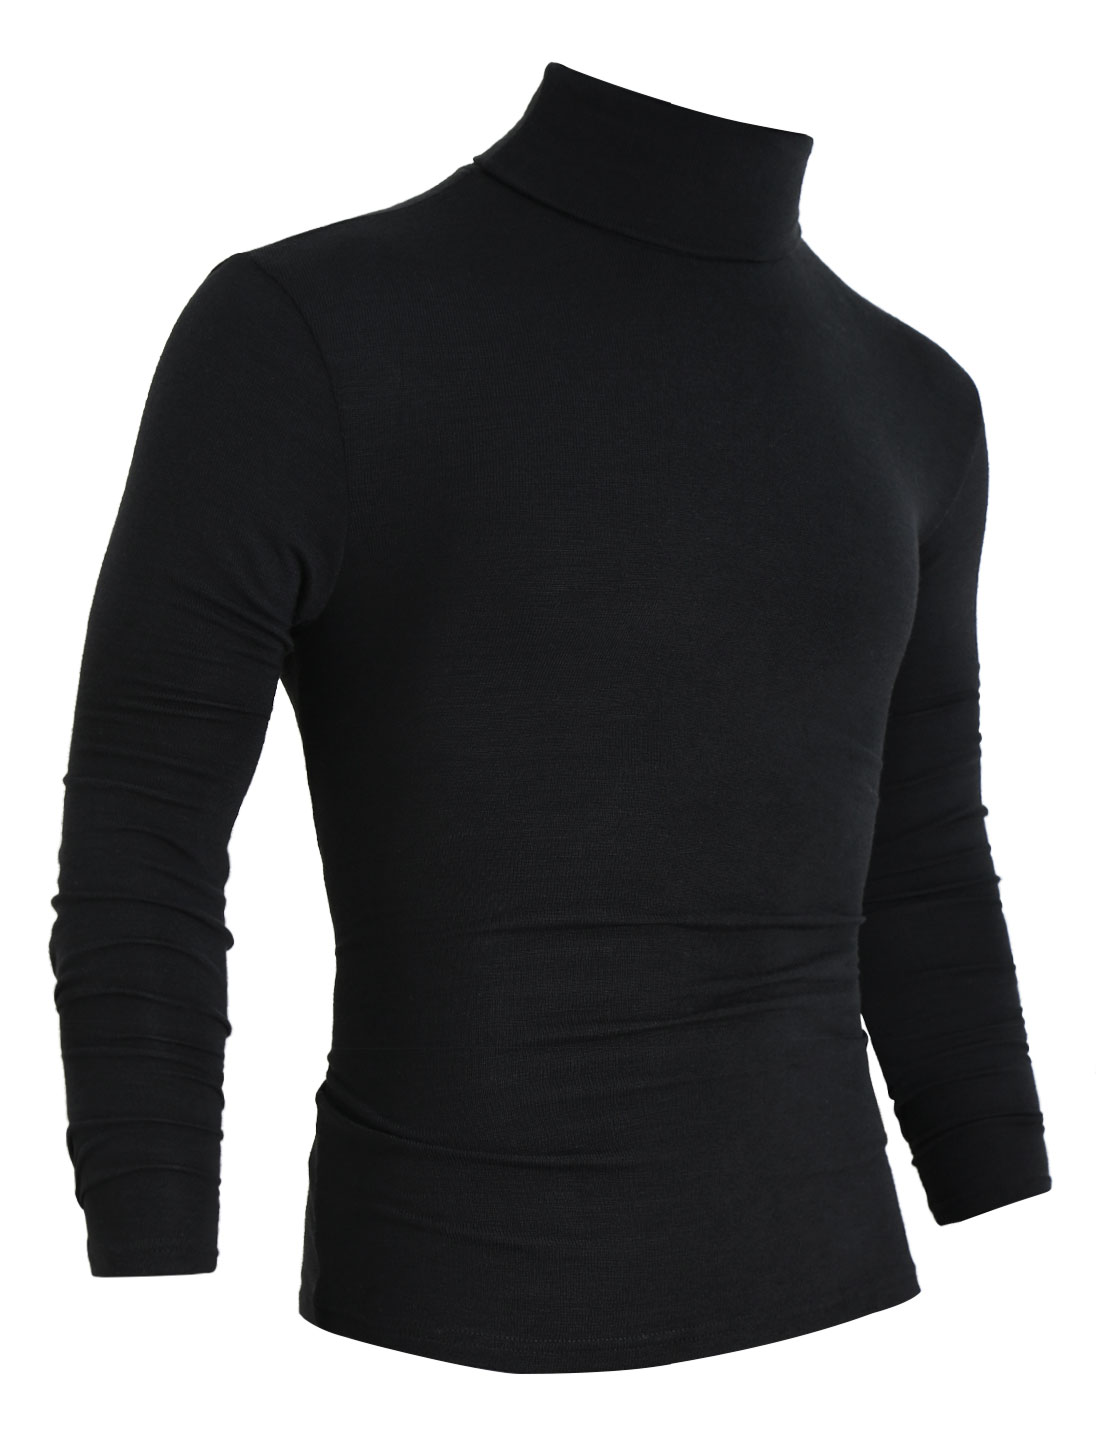 Mens Black Long Sleeve Turtleneck Simple Style Stretch Leisure Fall Top Shirt M